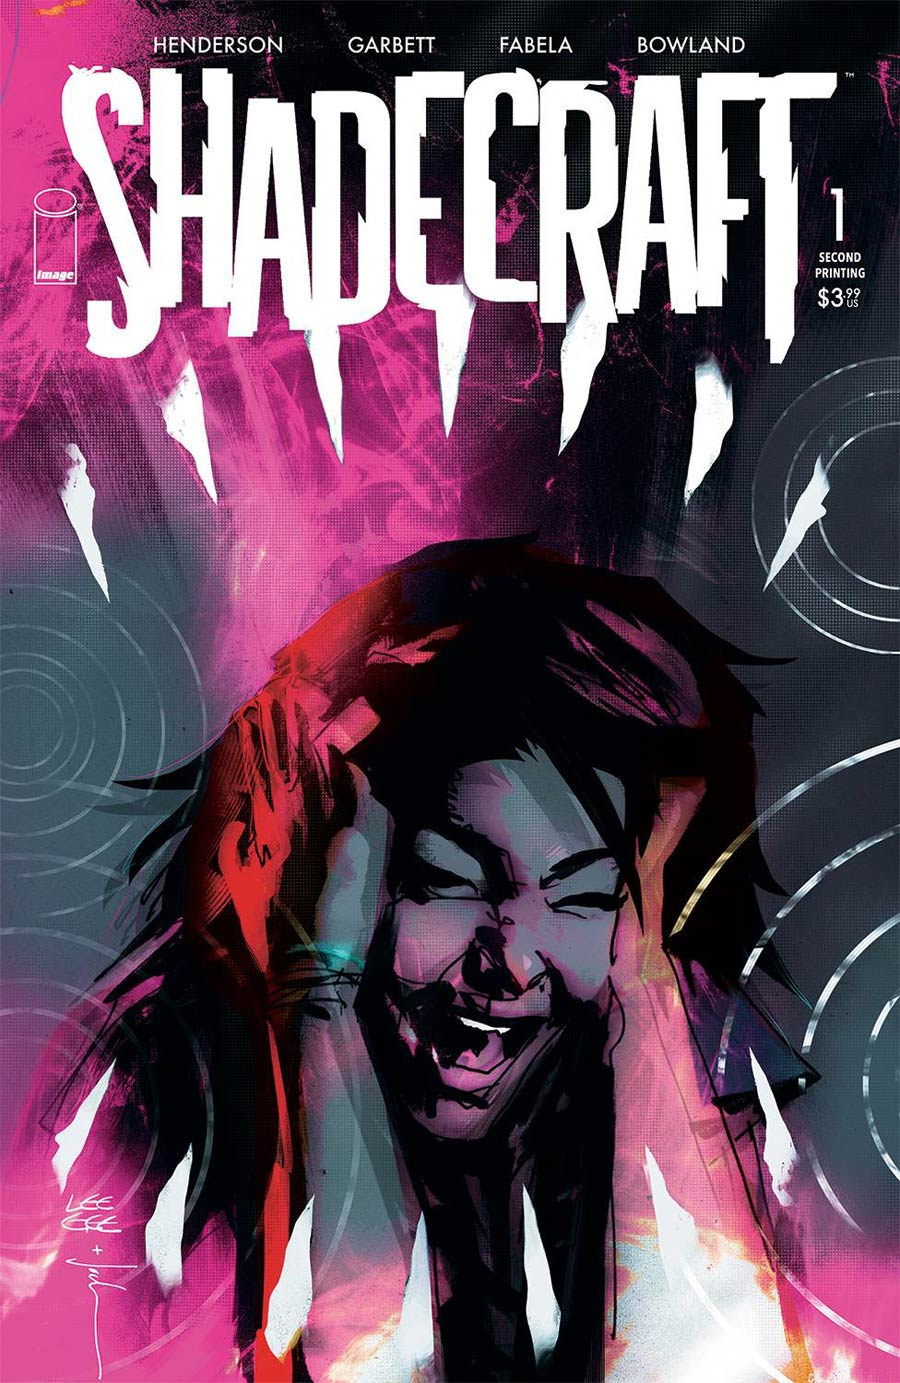 Shadecraft #1 Cover D 2nd Ptg